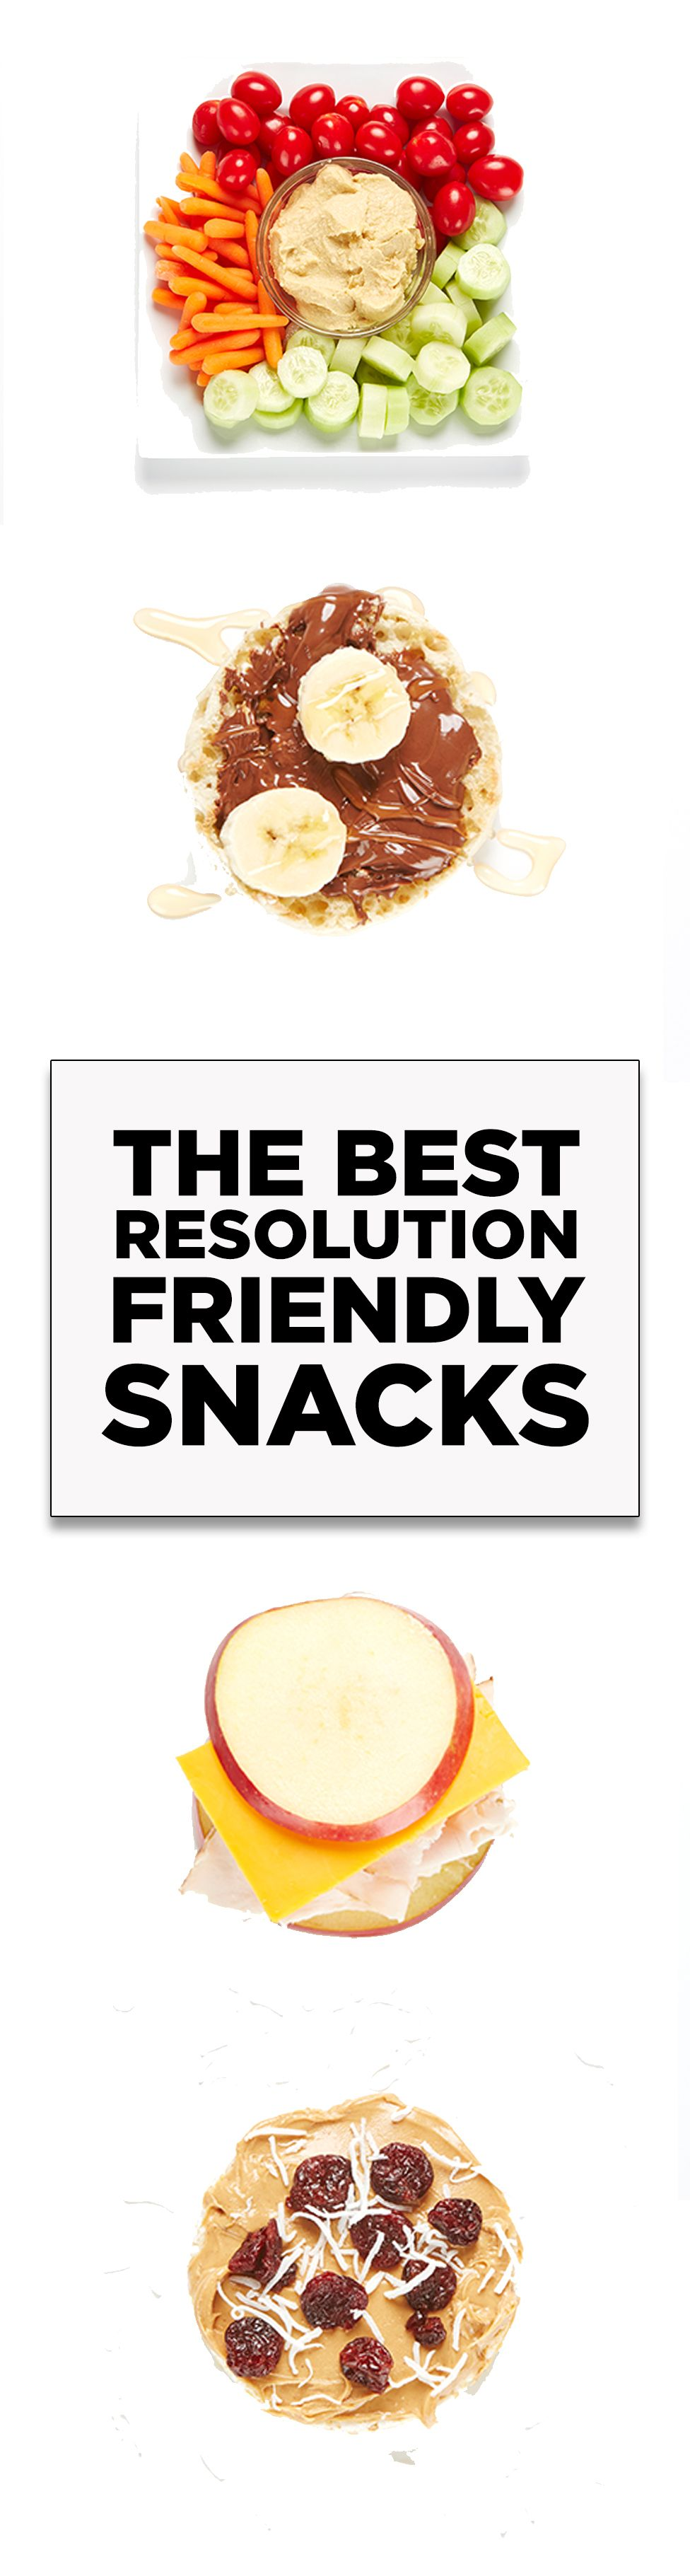 10 guilt delicious free snacks advise to wear in spring in 2019